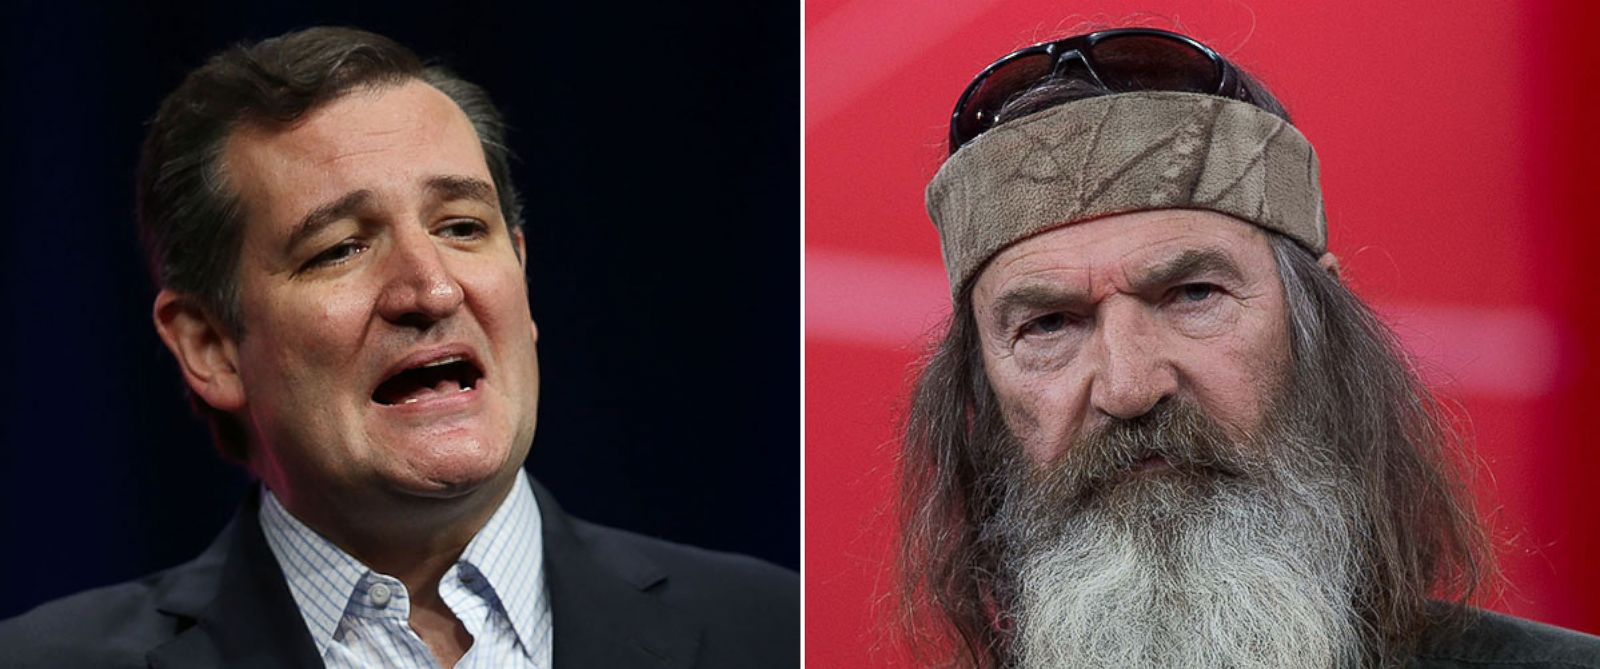 PHOTO: Republican presidential candidate Sen. Ted Cruz speaks during the Sunshine Summit conference on Nov. 13, 2015 in Orlando, Fla. Phil Robertson speaks at the Conservative Political Action Conference (CPAC) in National Harbor, Md. on Feb. 27, 2015.